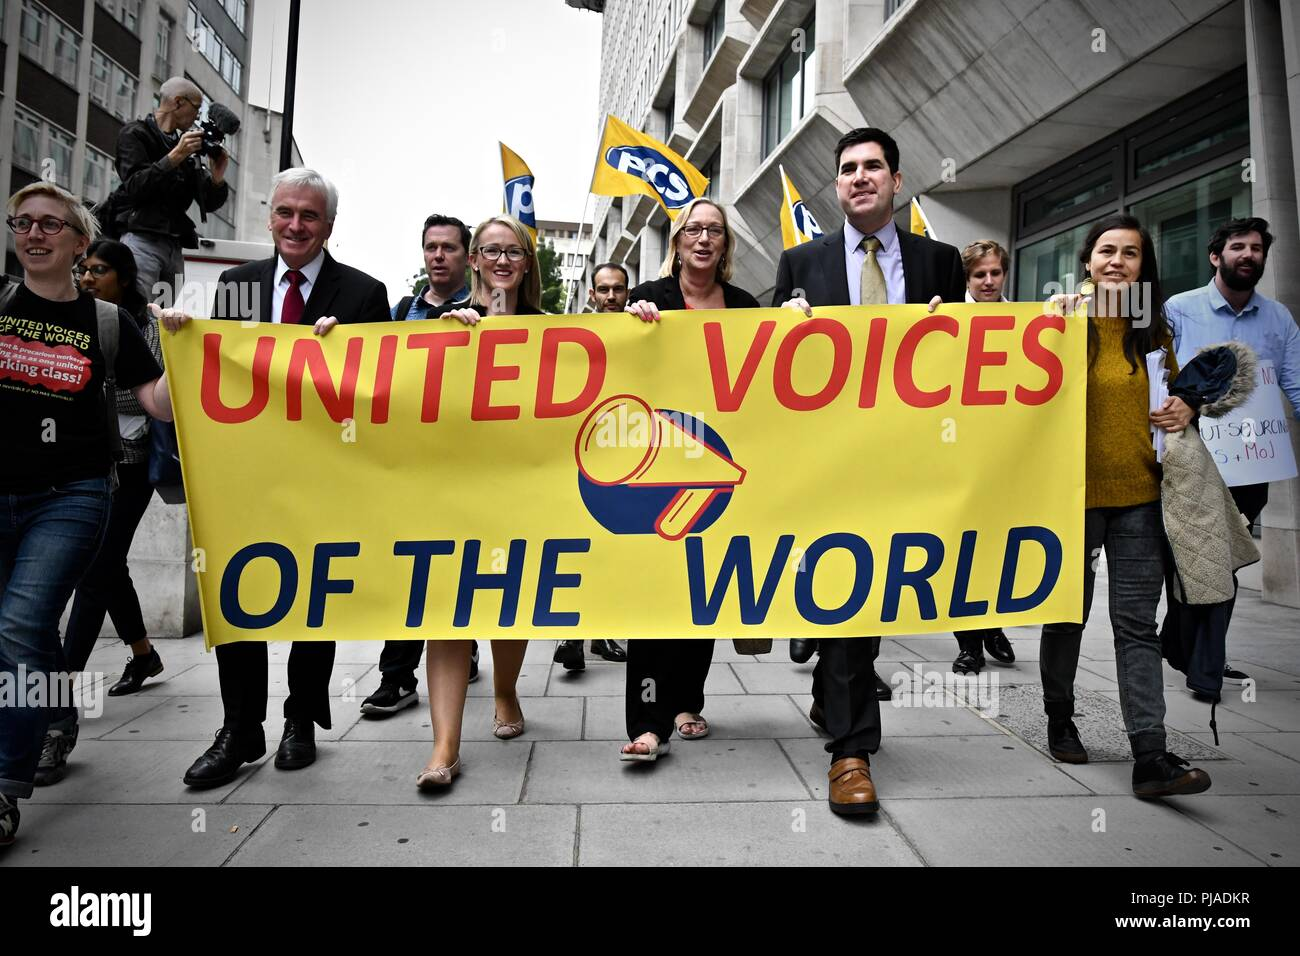 Westminster London United Kingdom - 5th September 2018 - PCS BEIS Living Wage Demo outside the Ministry Of Justice lead By John McDonnell MP. Aim to bring attention to the absence of living wage for cleaners in the Ministry of Justice. Credit: Stuart Mitchell/Alamy Live News - Stock Image